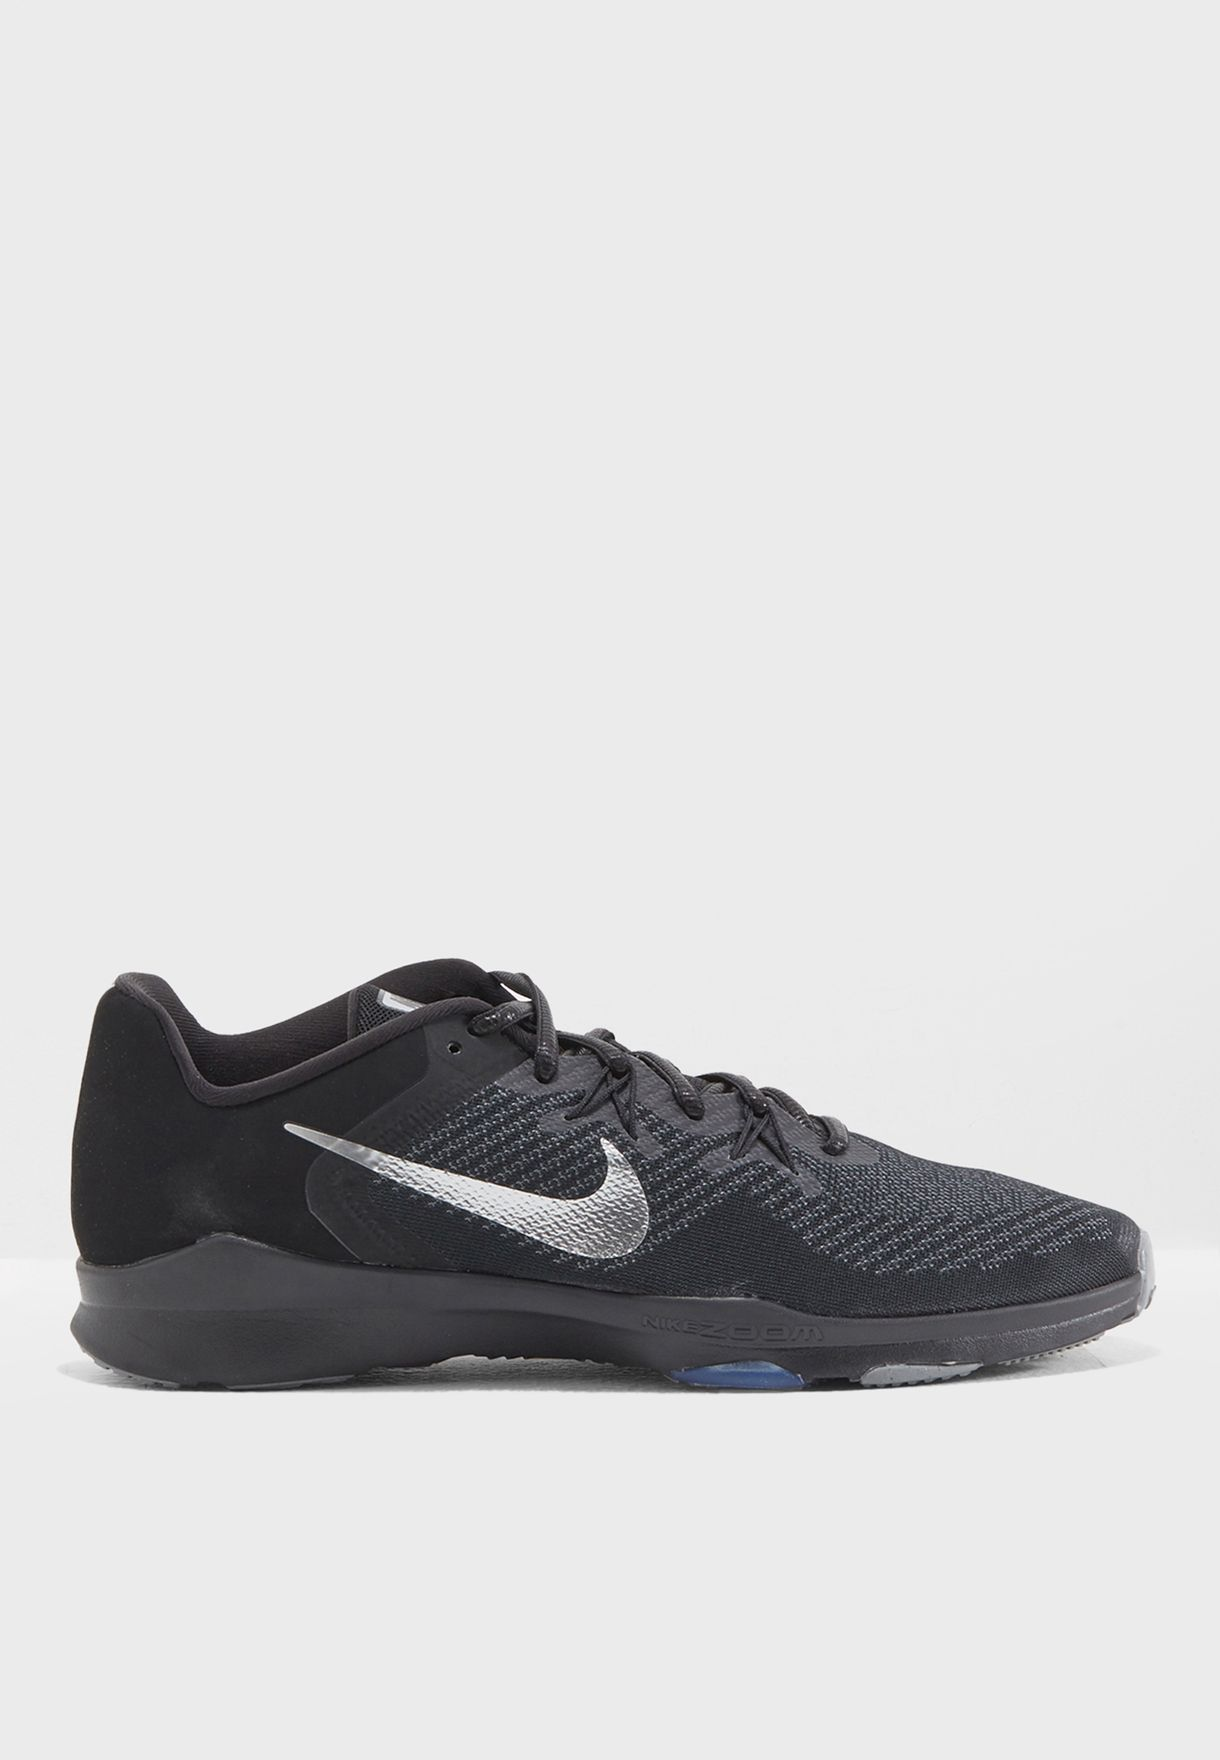 5633a22c0bc5 Shop Nike black Zoom Condition TR 2 PRM 909010-001 for Women in UAE ...